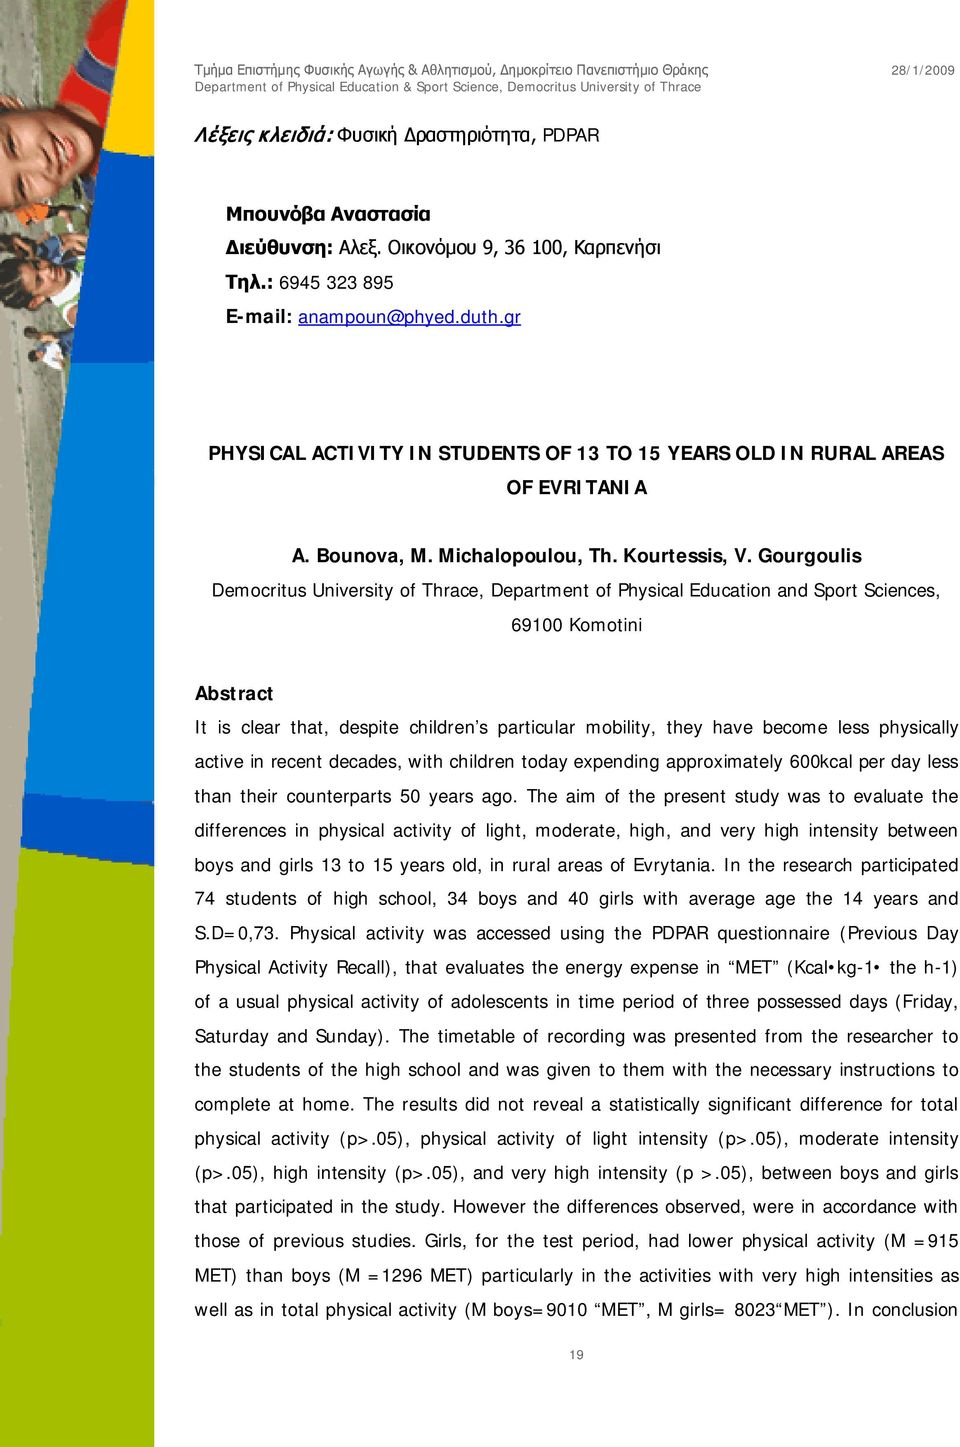 Gourgoulis Democritus University of Thrace, Department of Physical Education and Sport Sciences, 69100 Komotini Abstract It is clear that, despite children s particular mobility, they have become